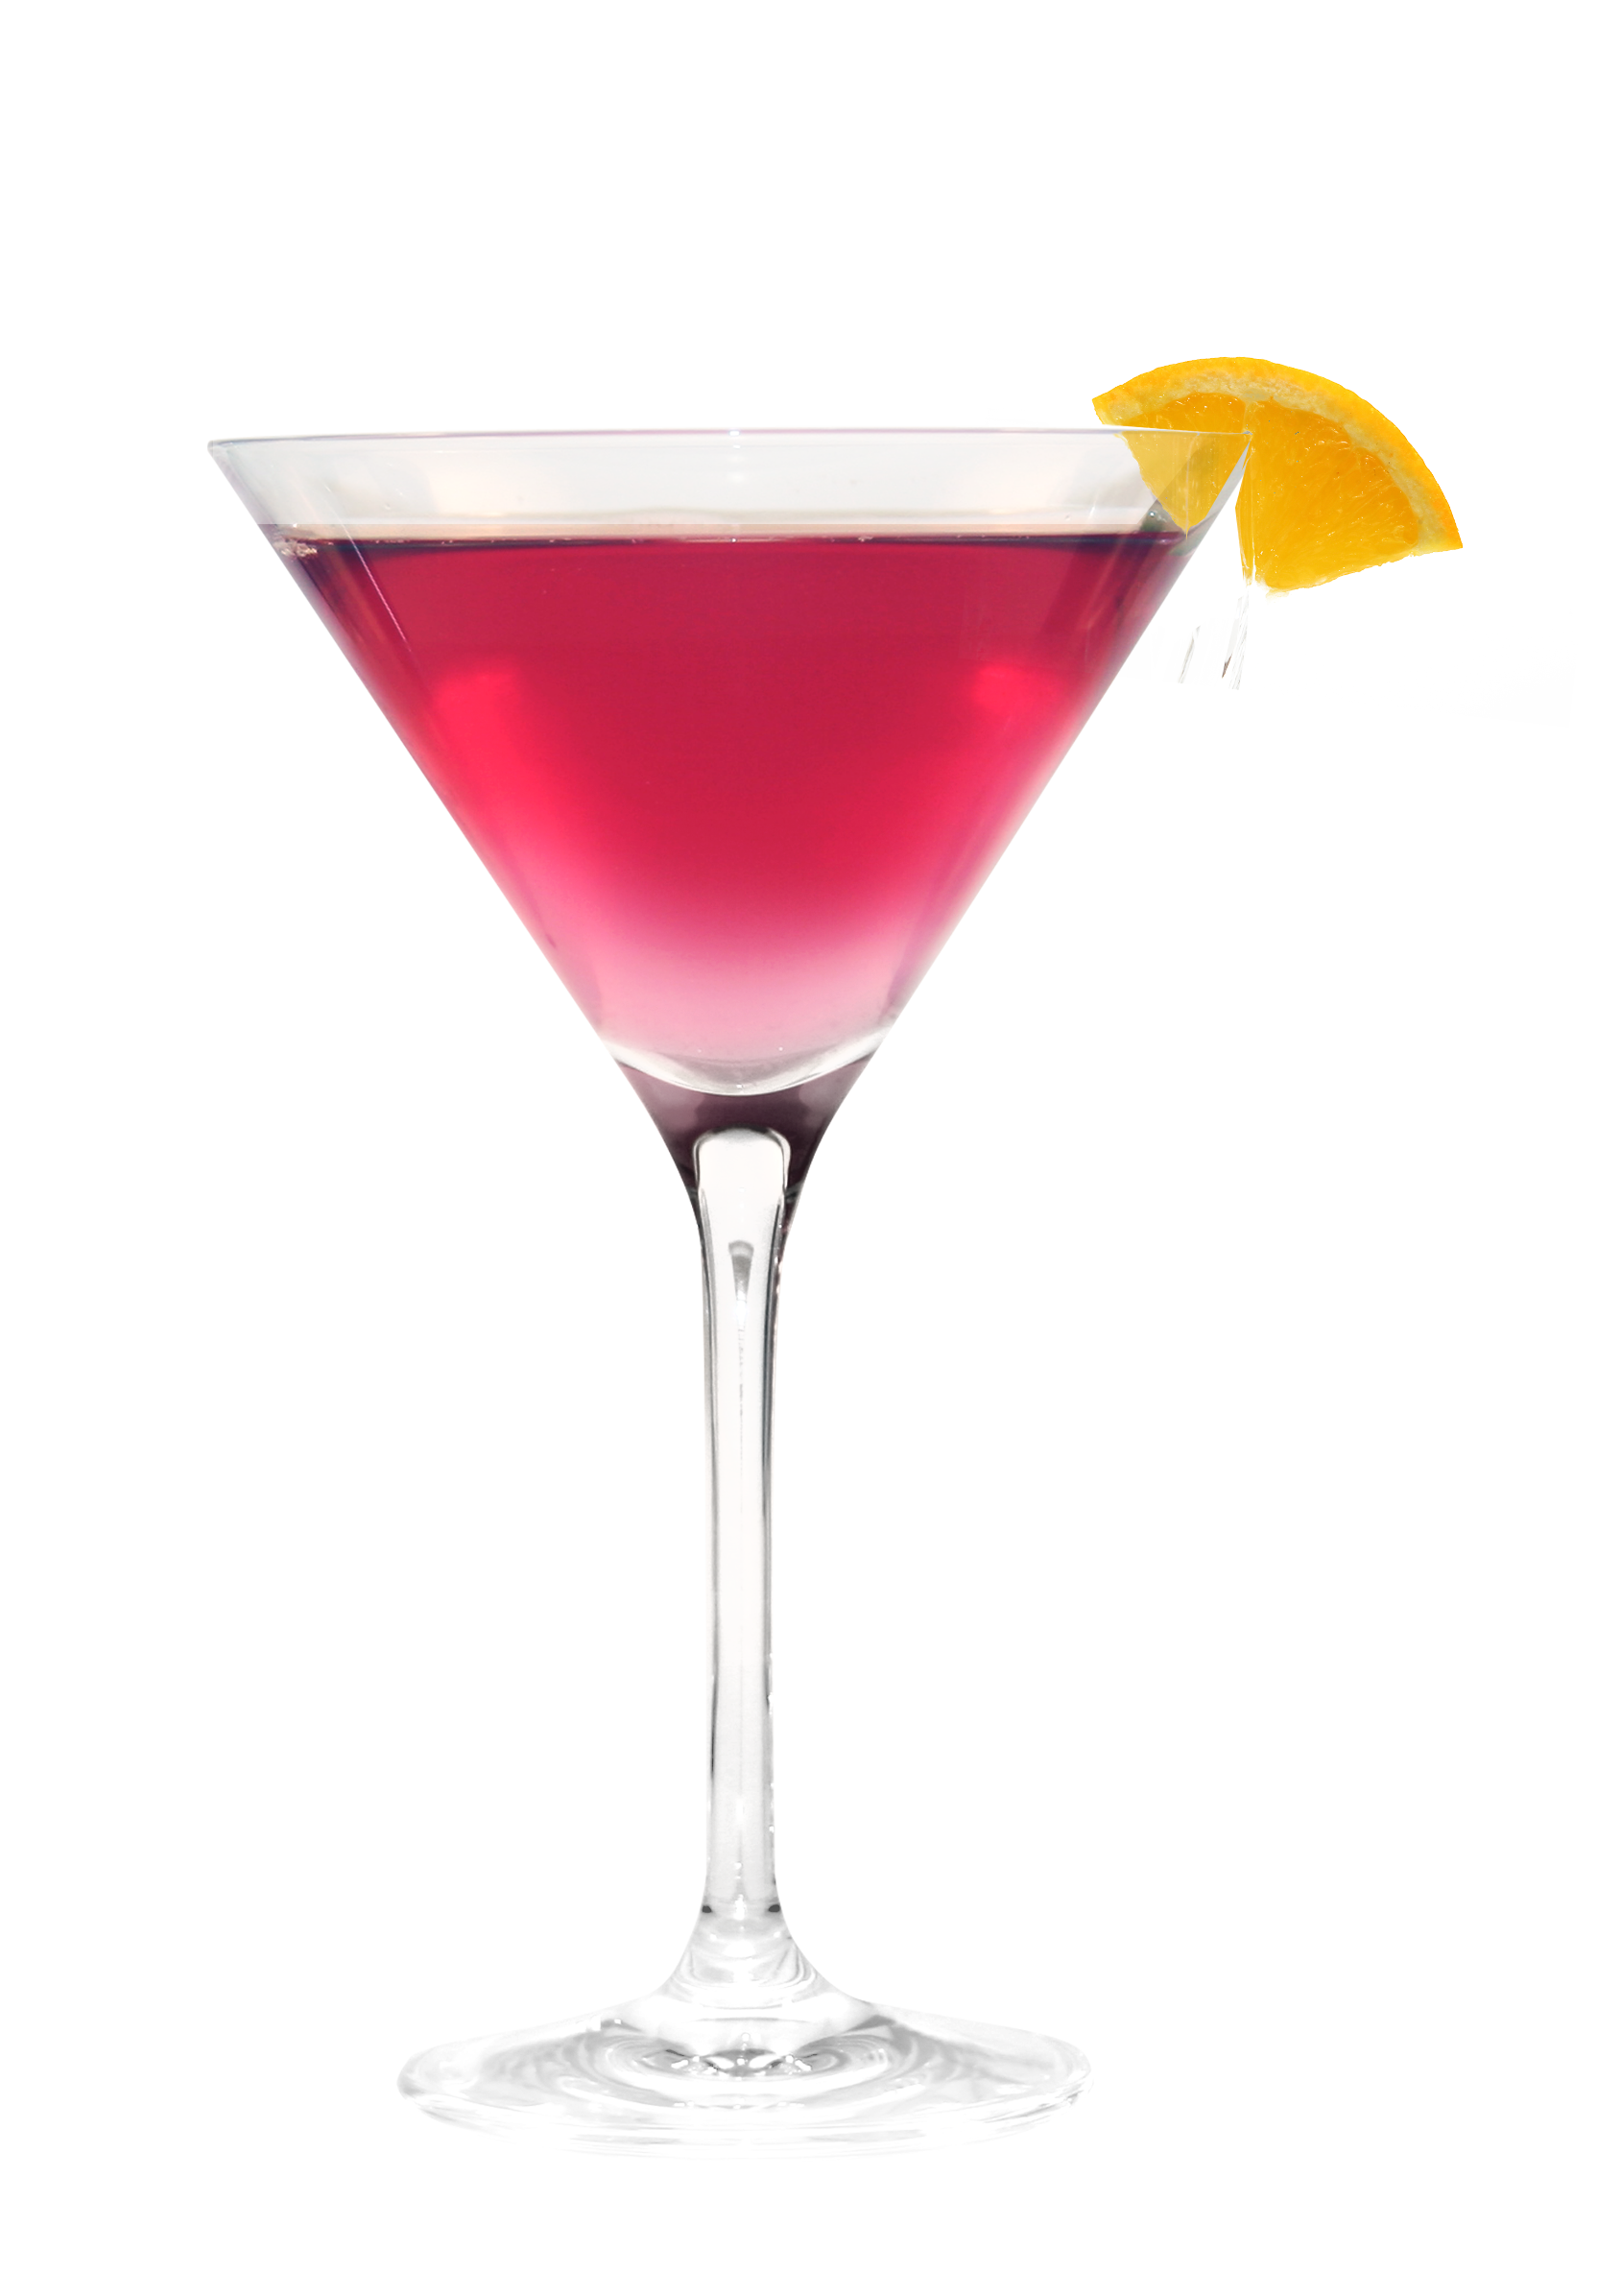 martini splash png